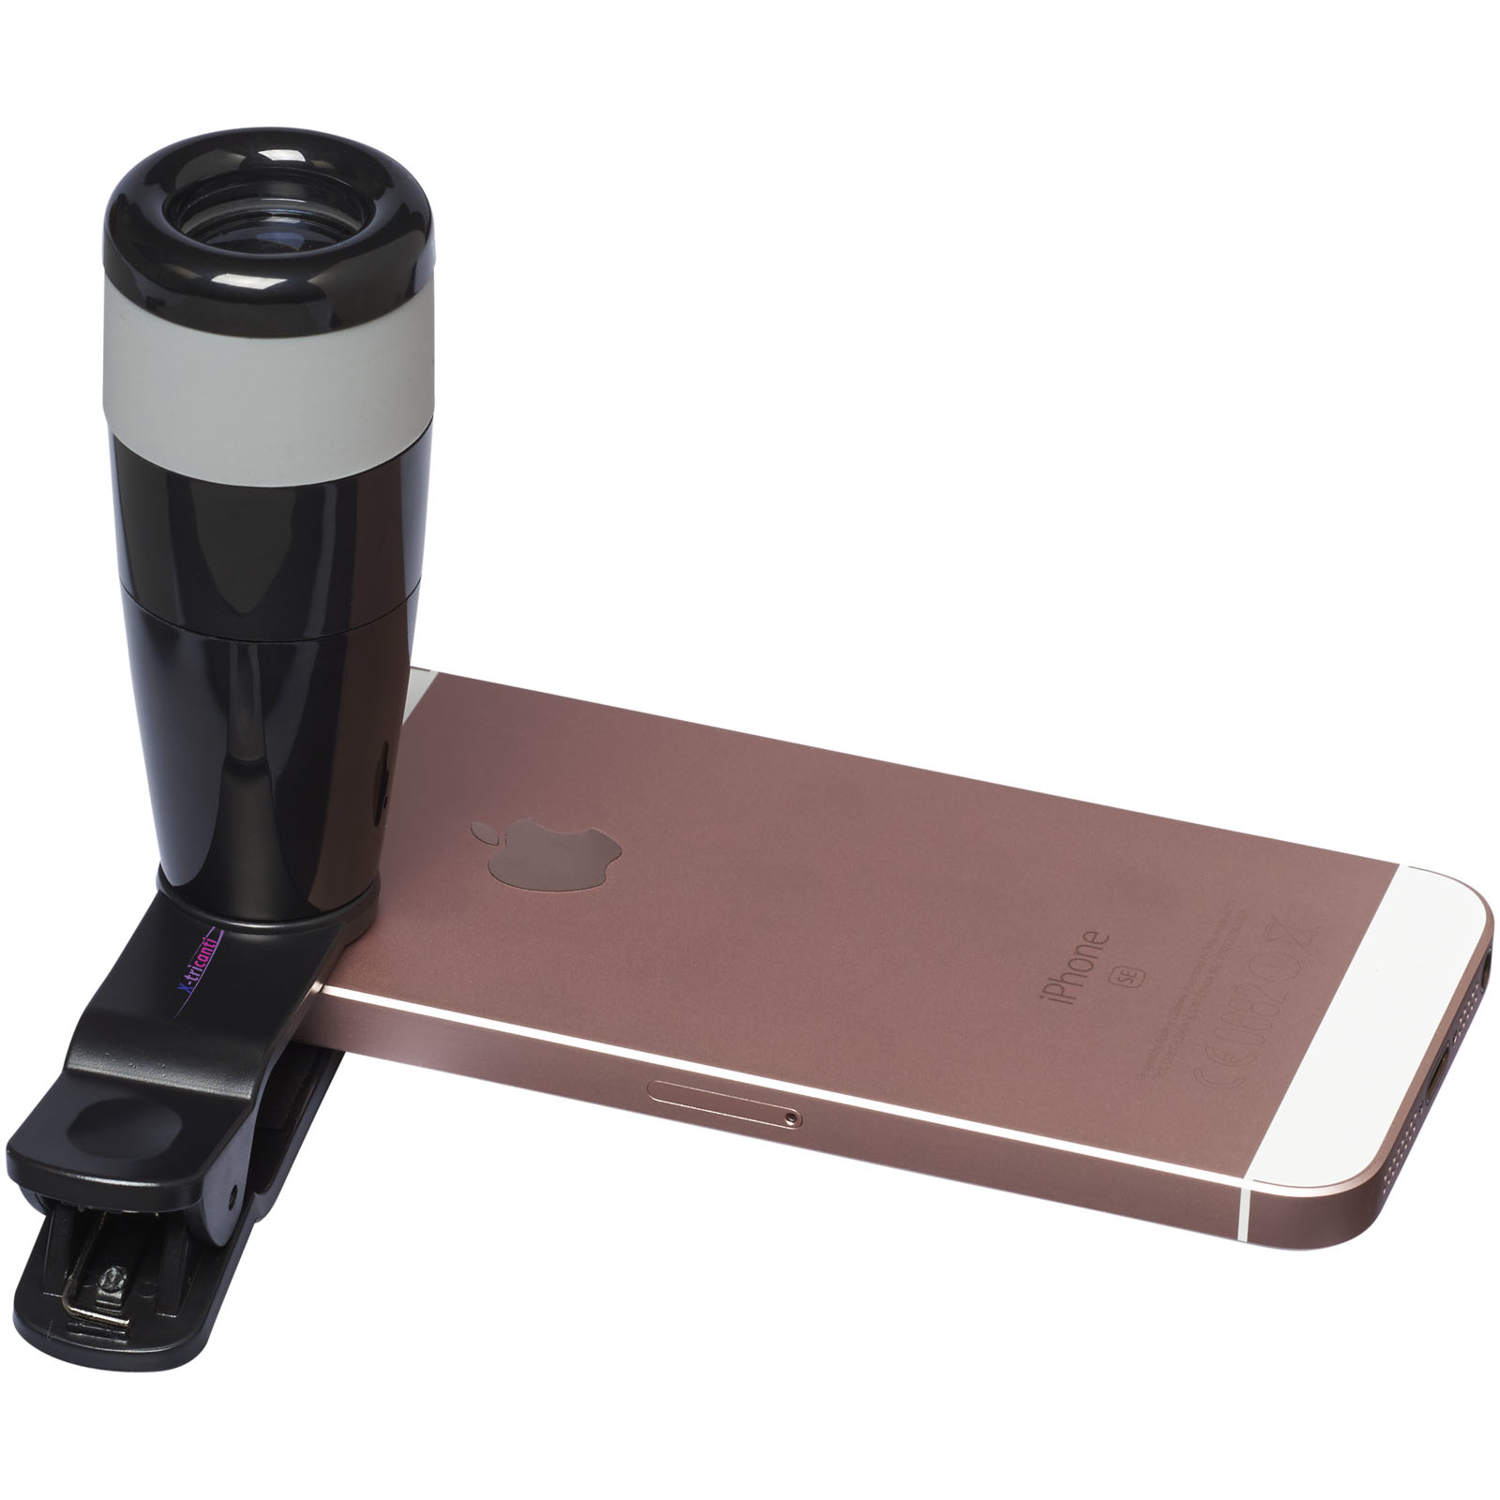 Zoom-In 8X Telescopic Smartphone Camera Lens